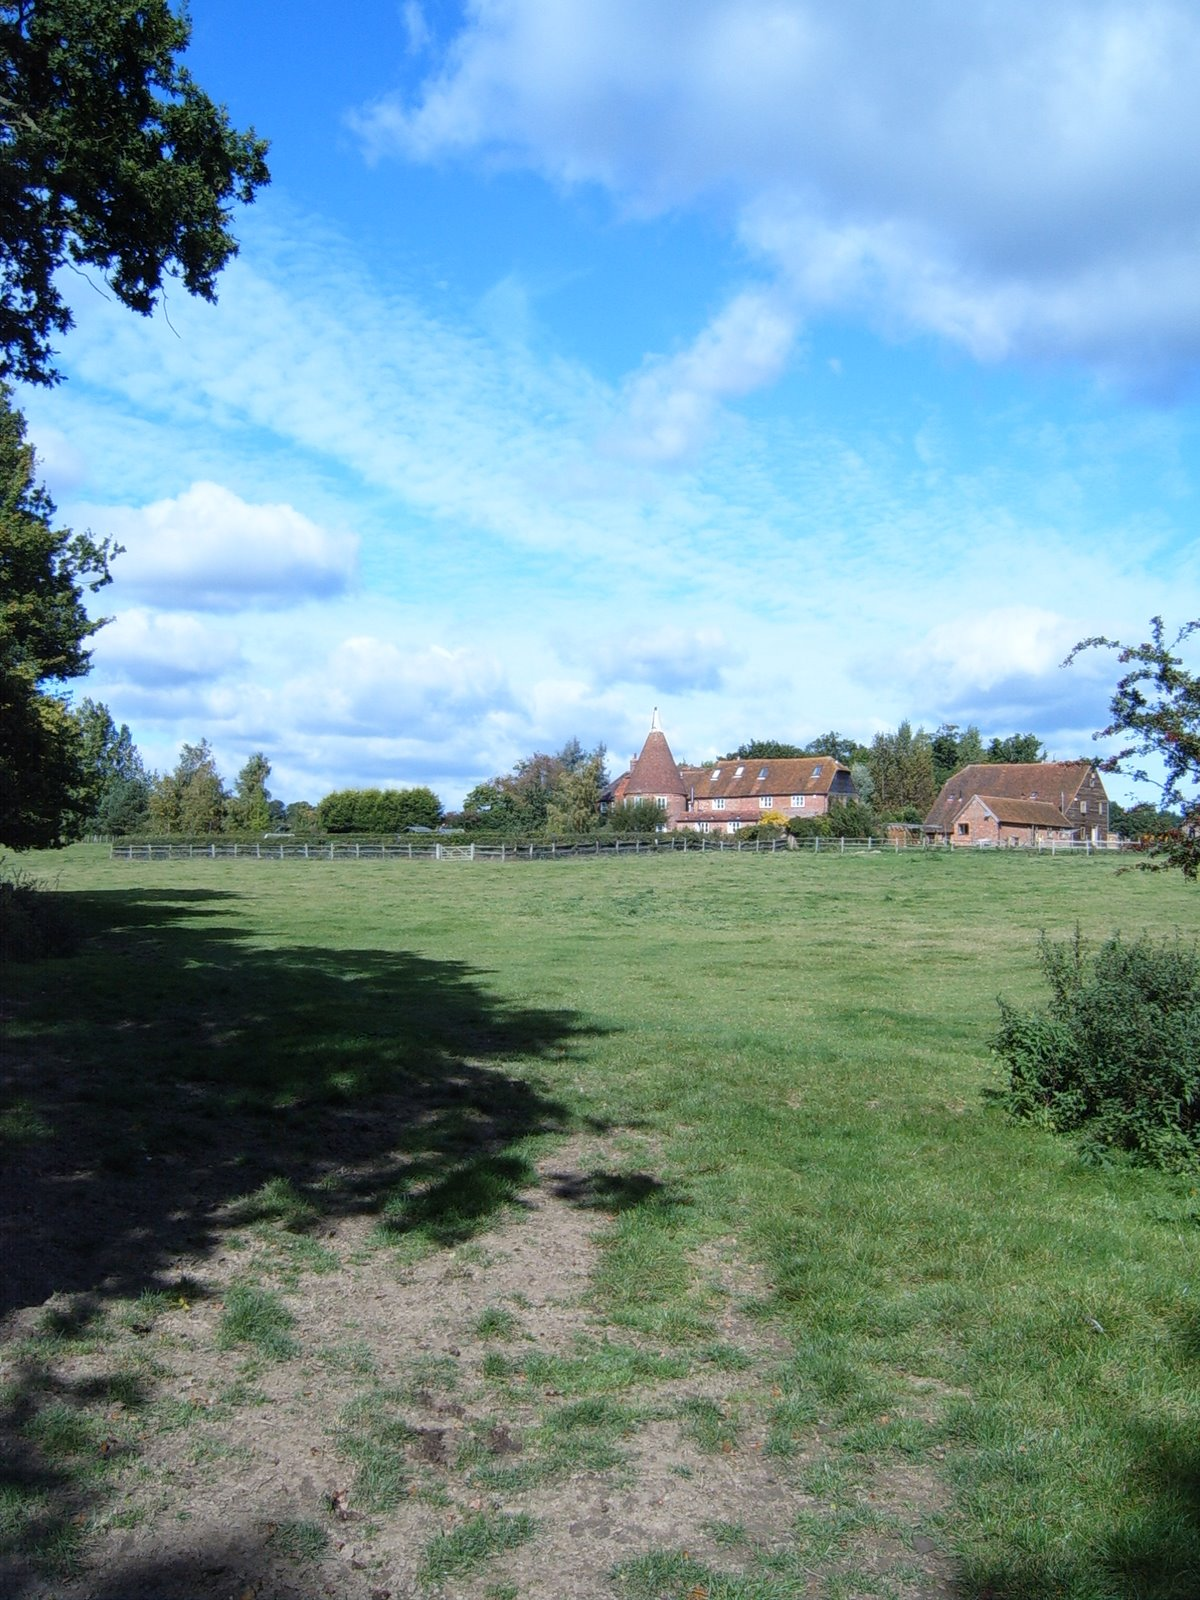 Oast House in the distance